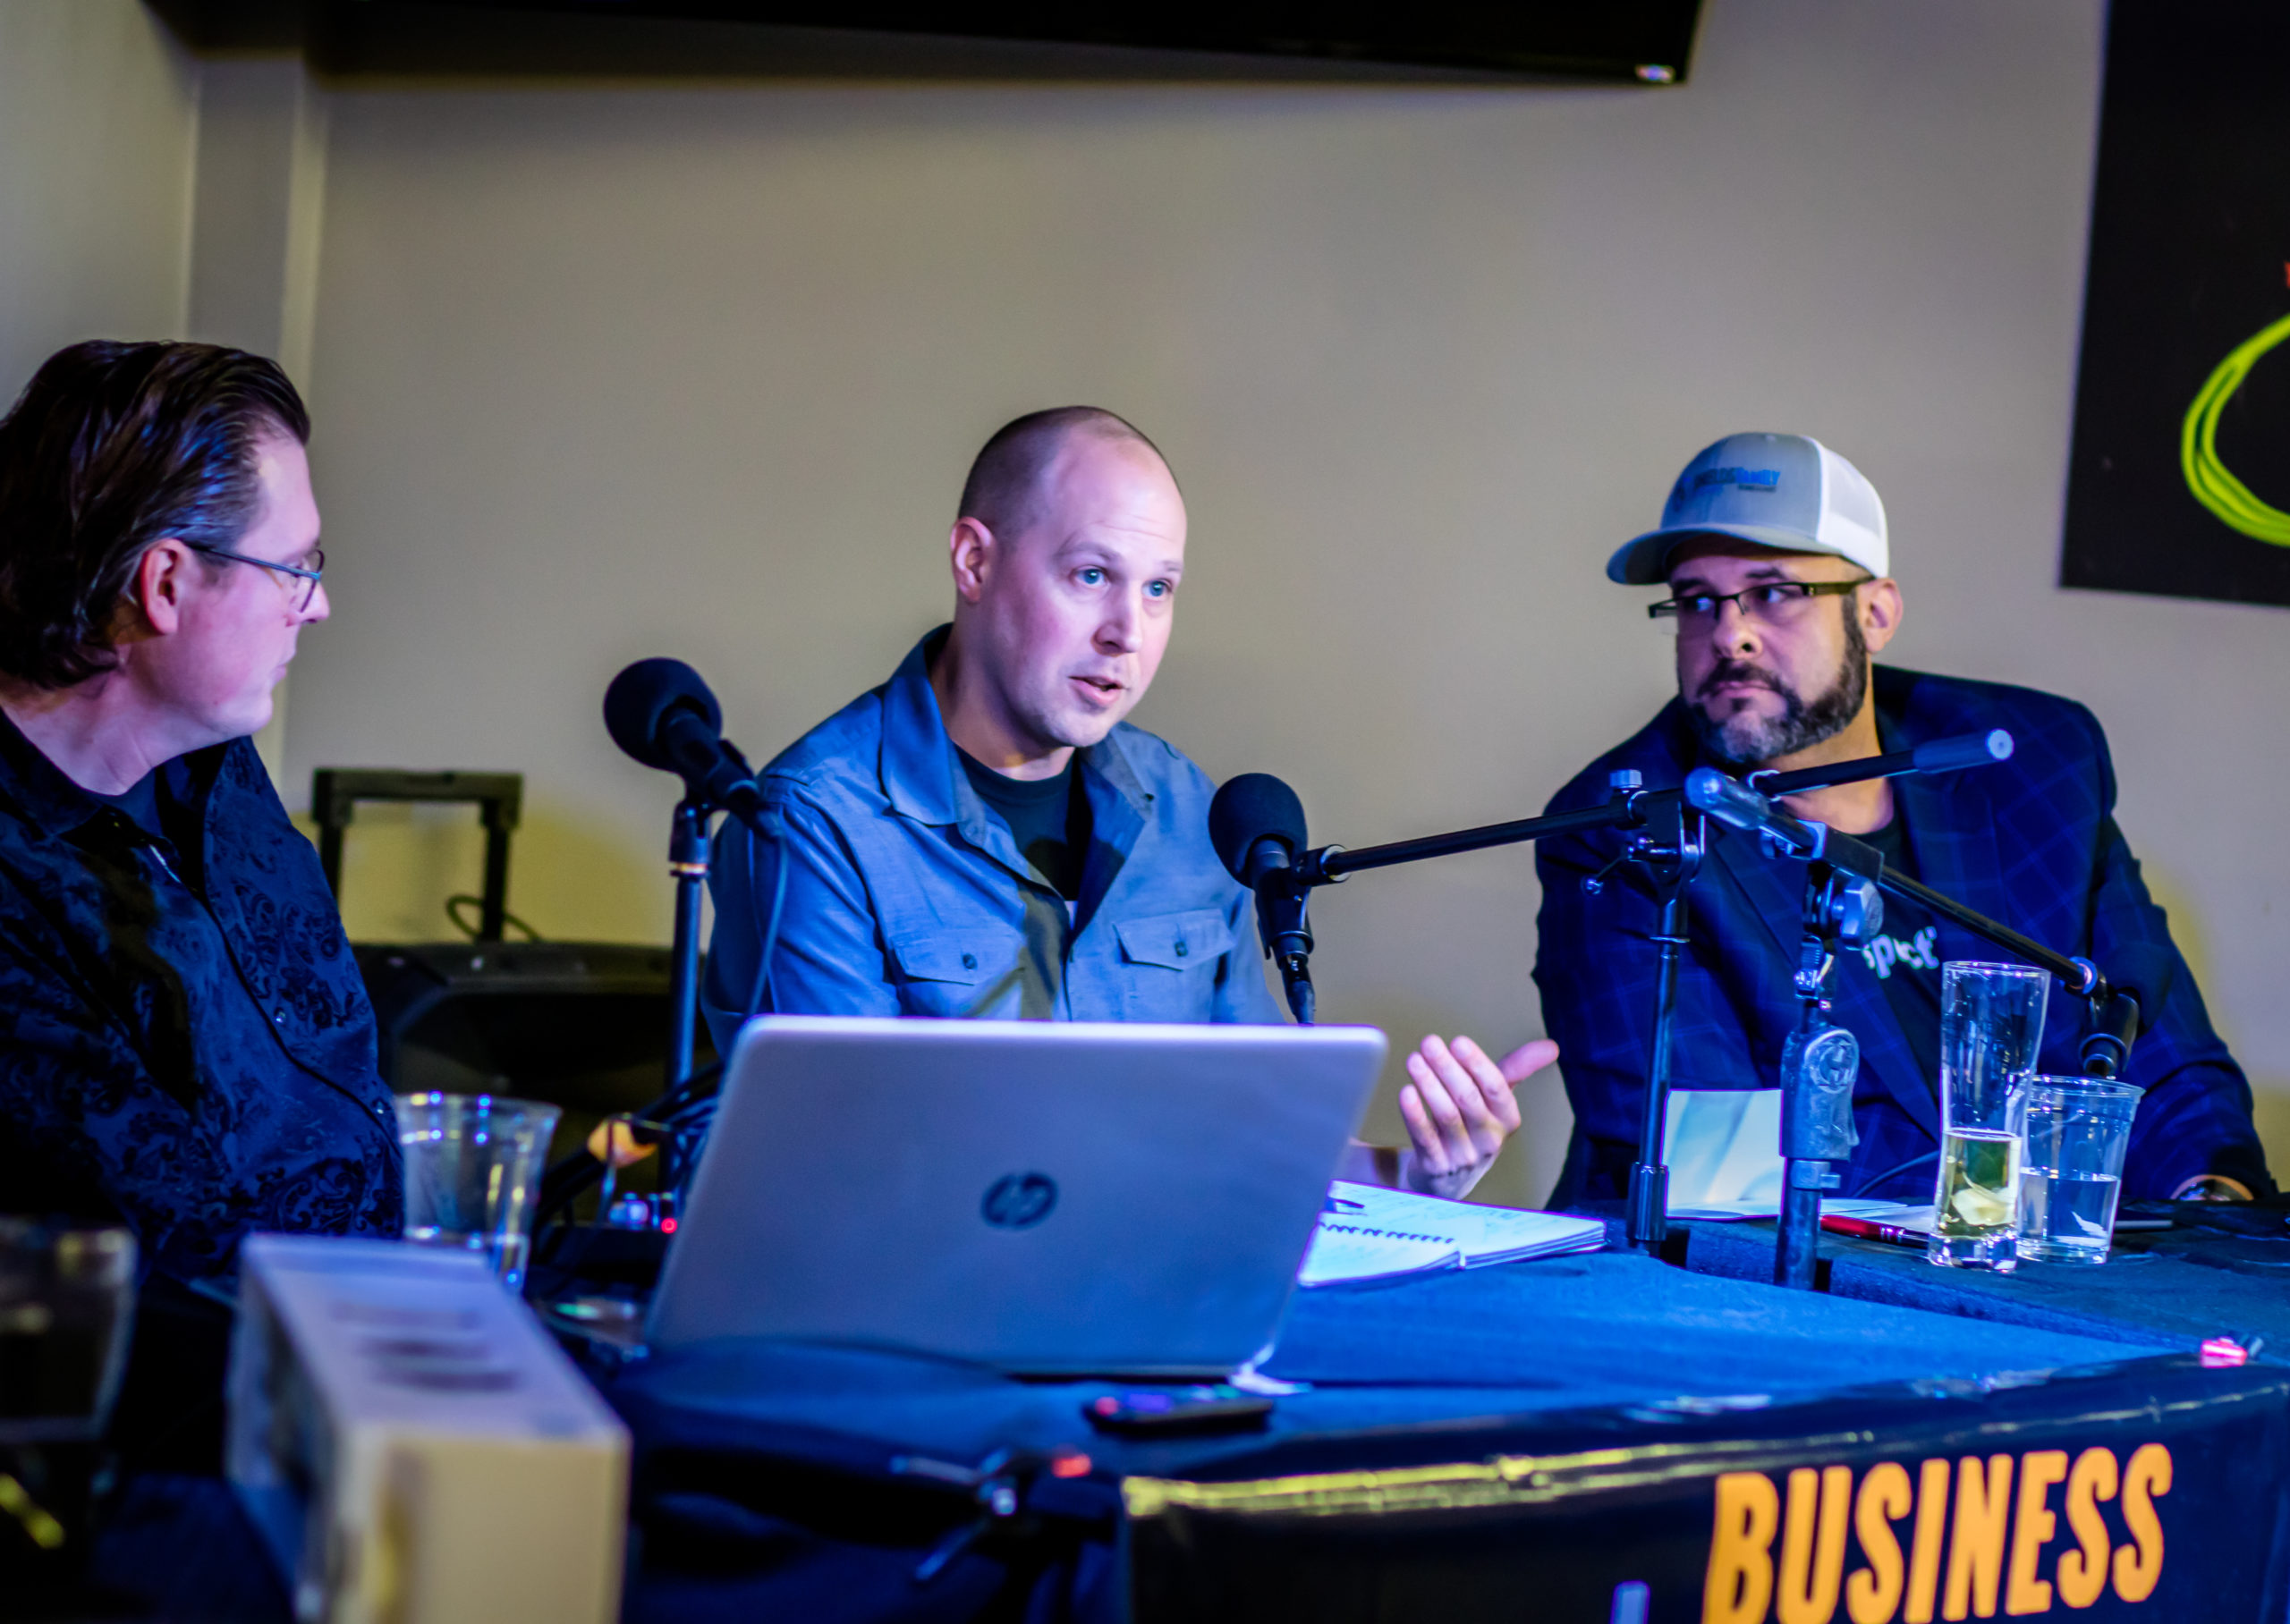 Business Over Beer Hosts Business Podcast best craft beer types of entrepreneurship